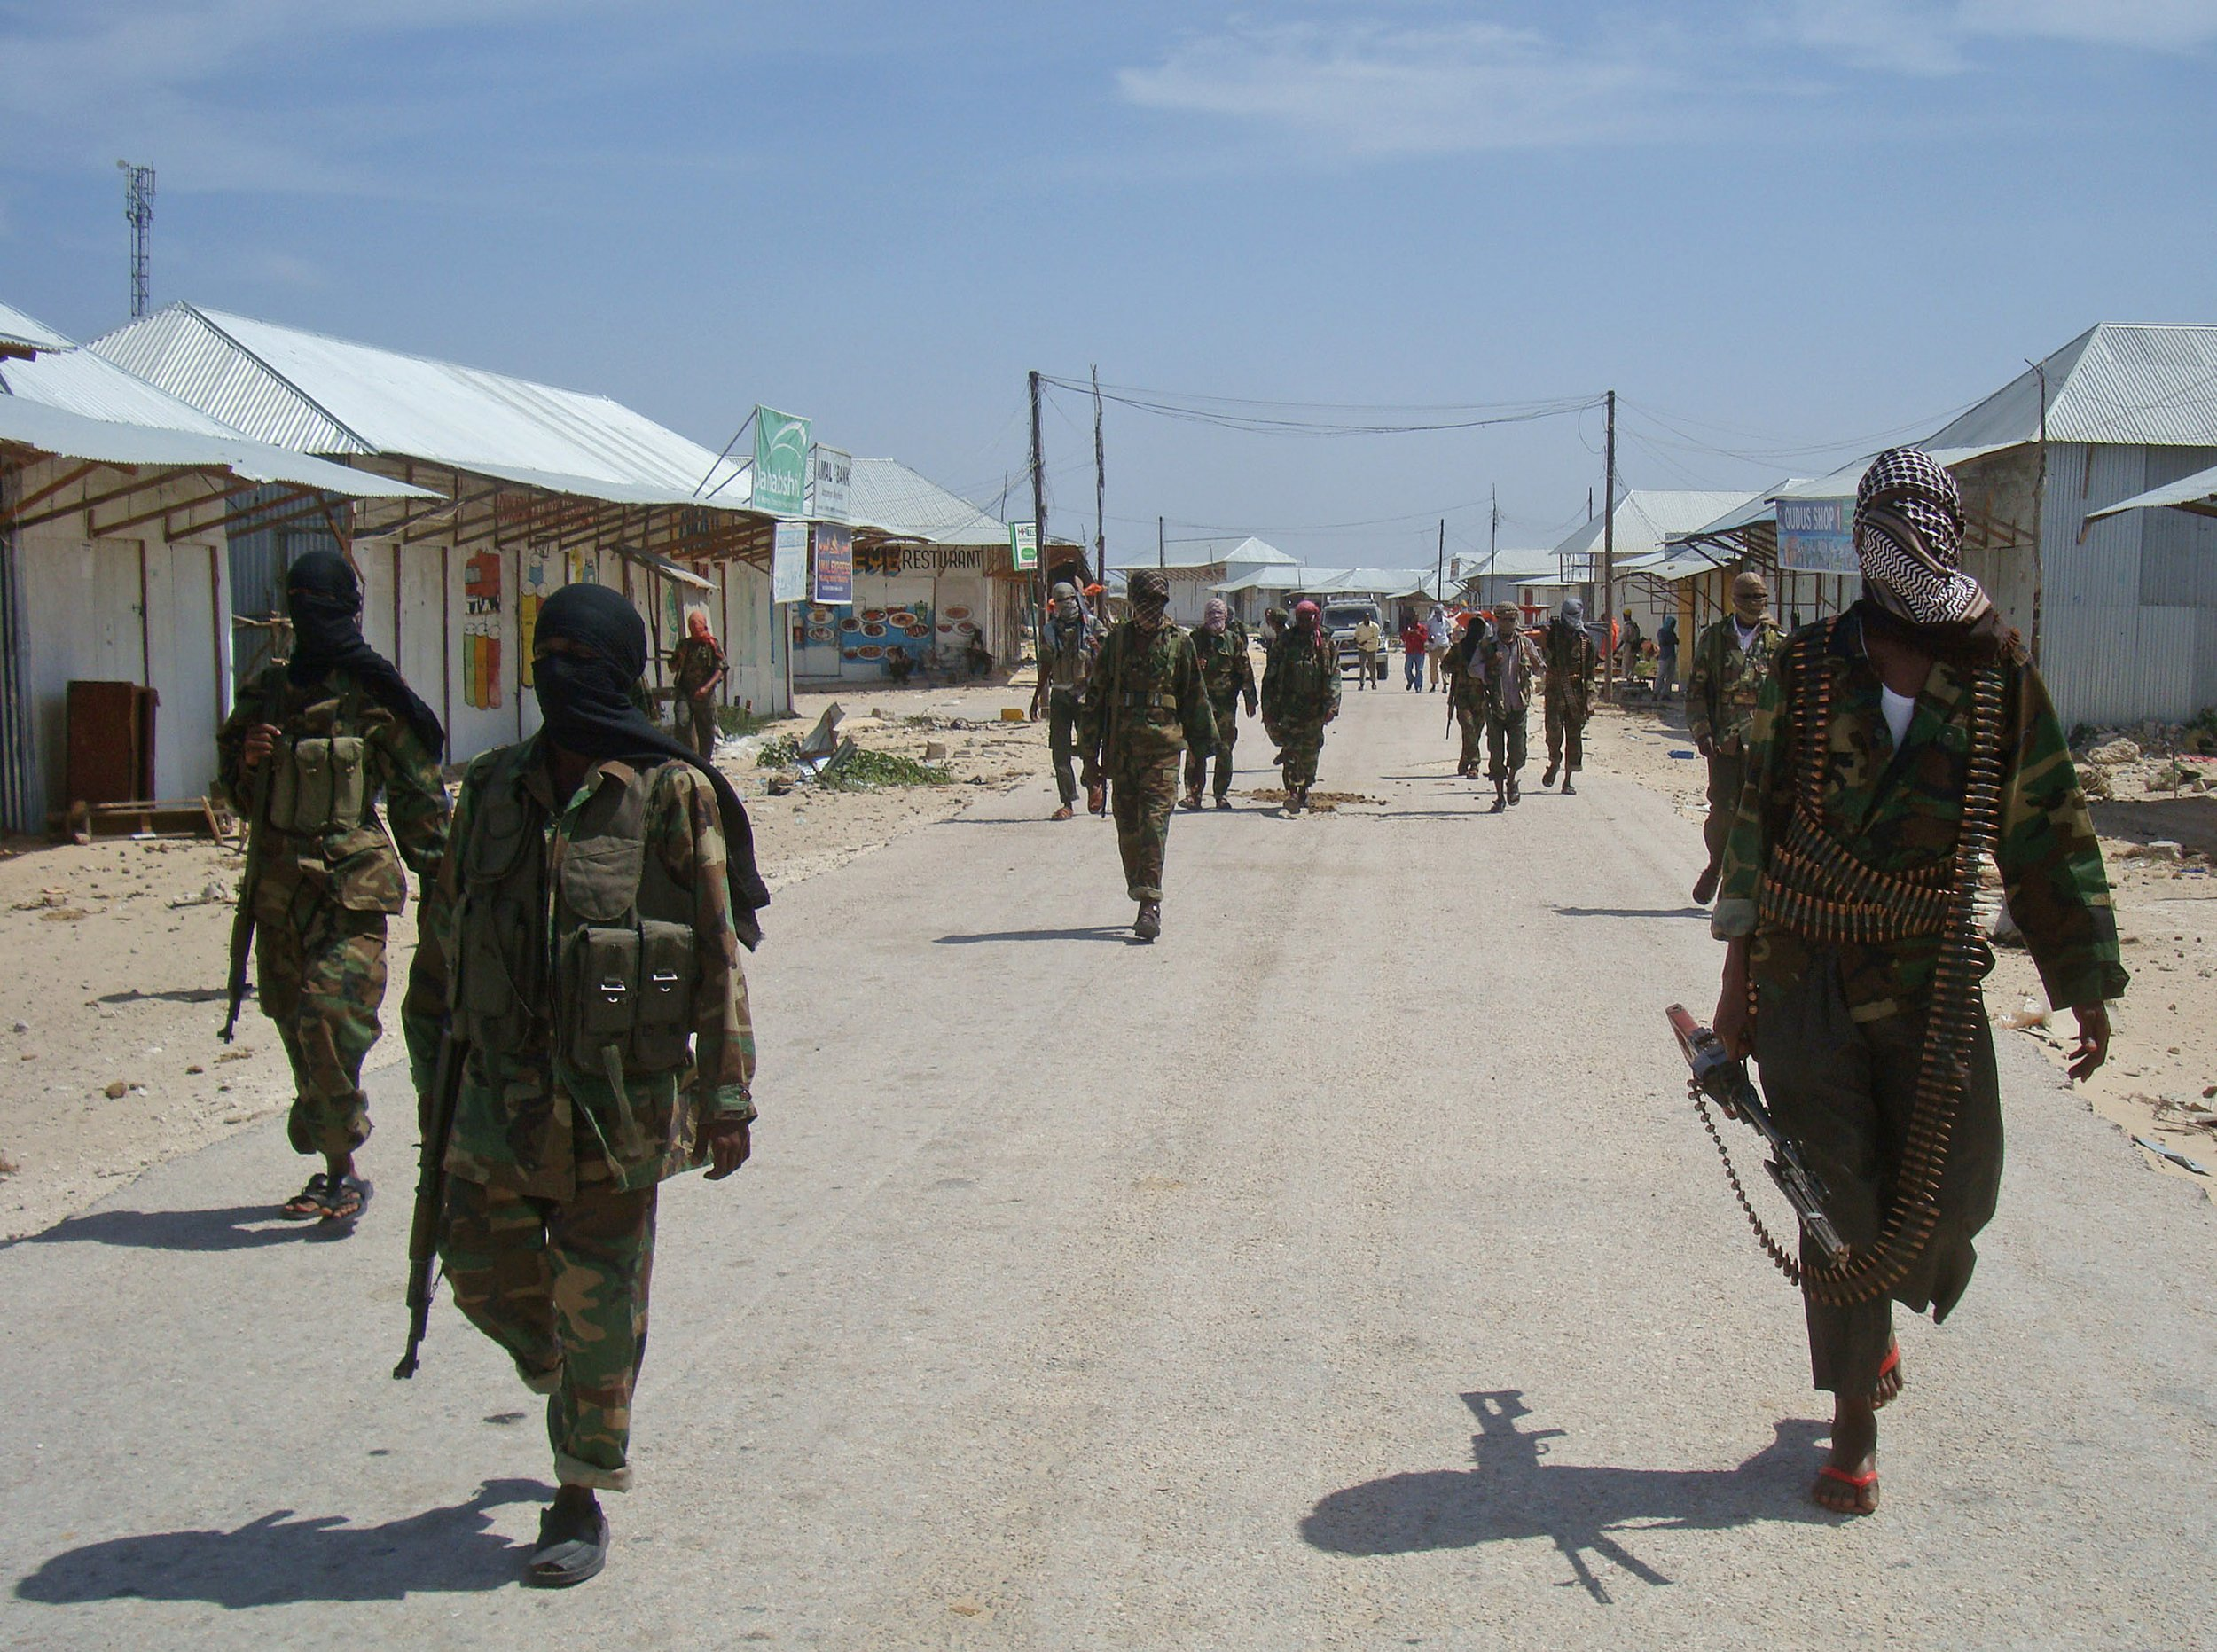 Al-Shabab recruits in Mogadishu